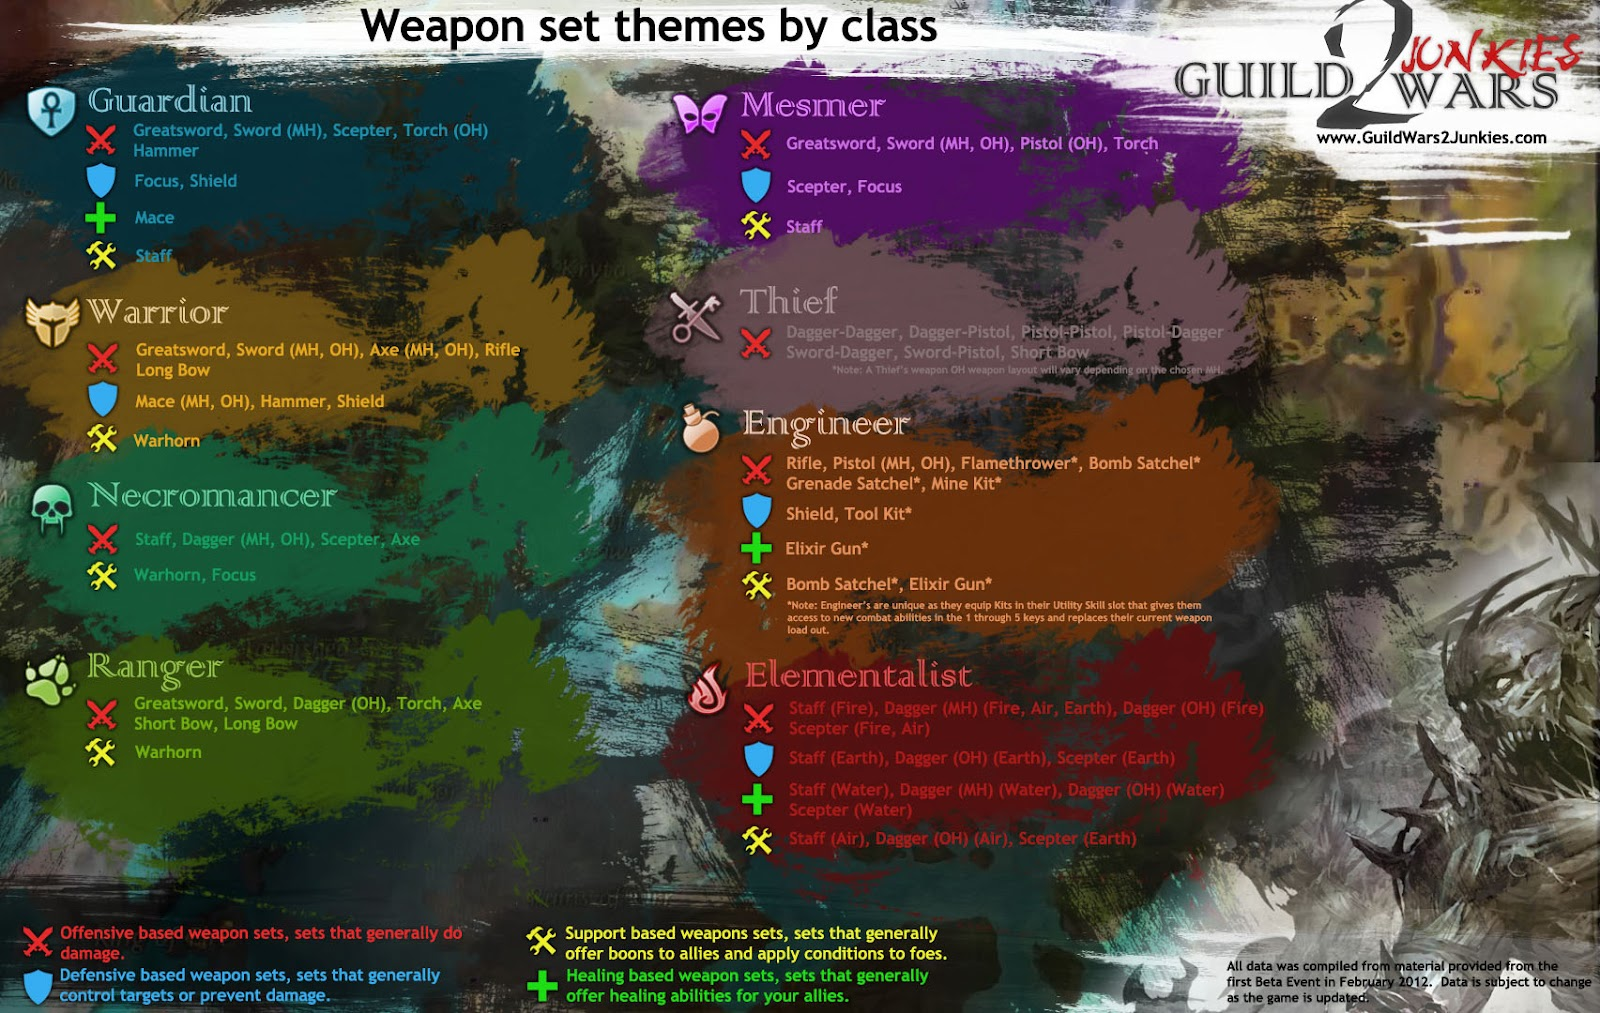 GW2 Weapon Themes and Roles